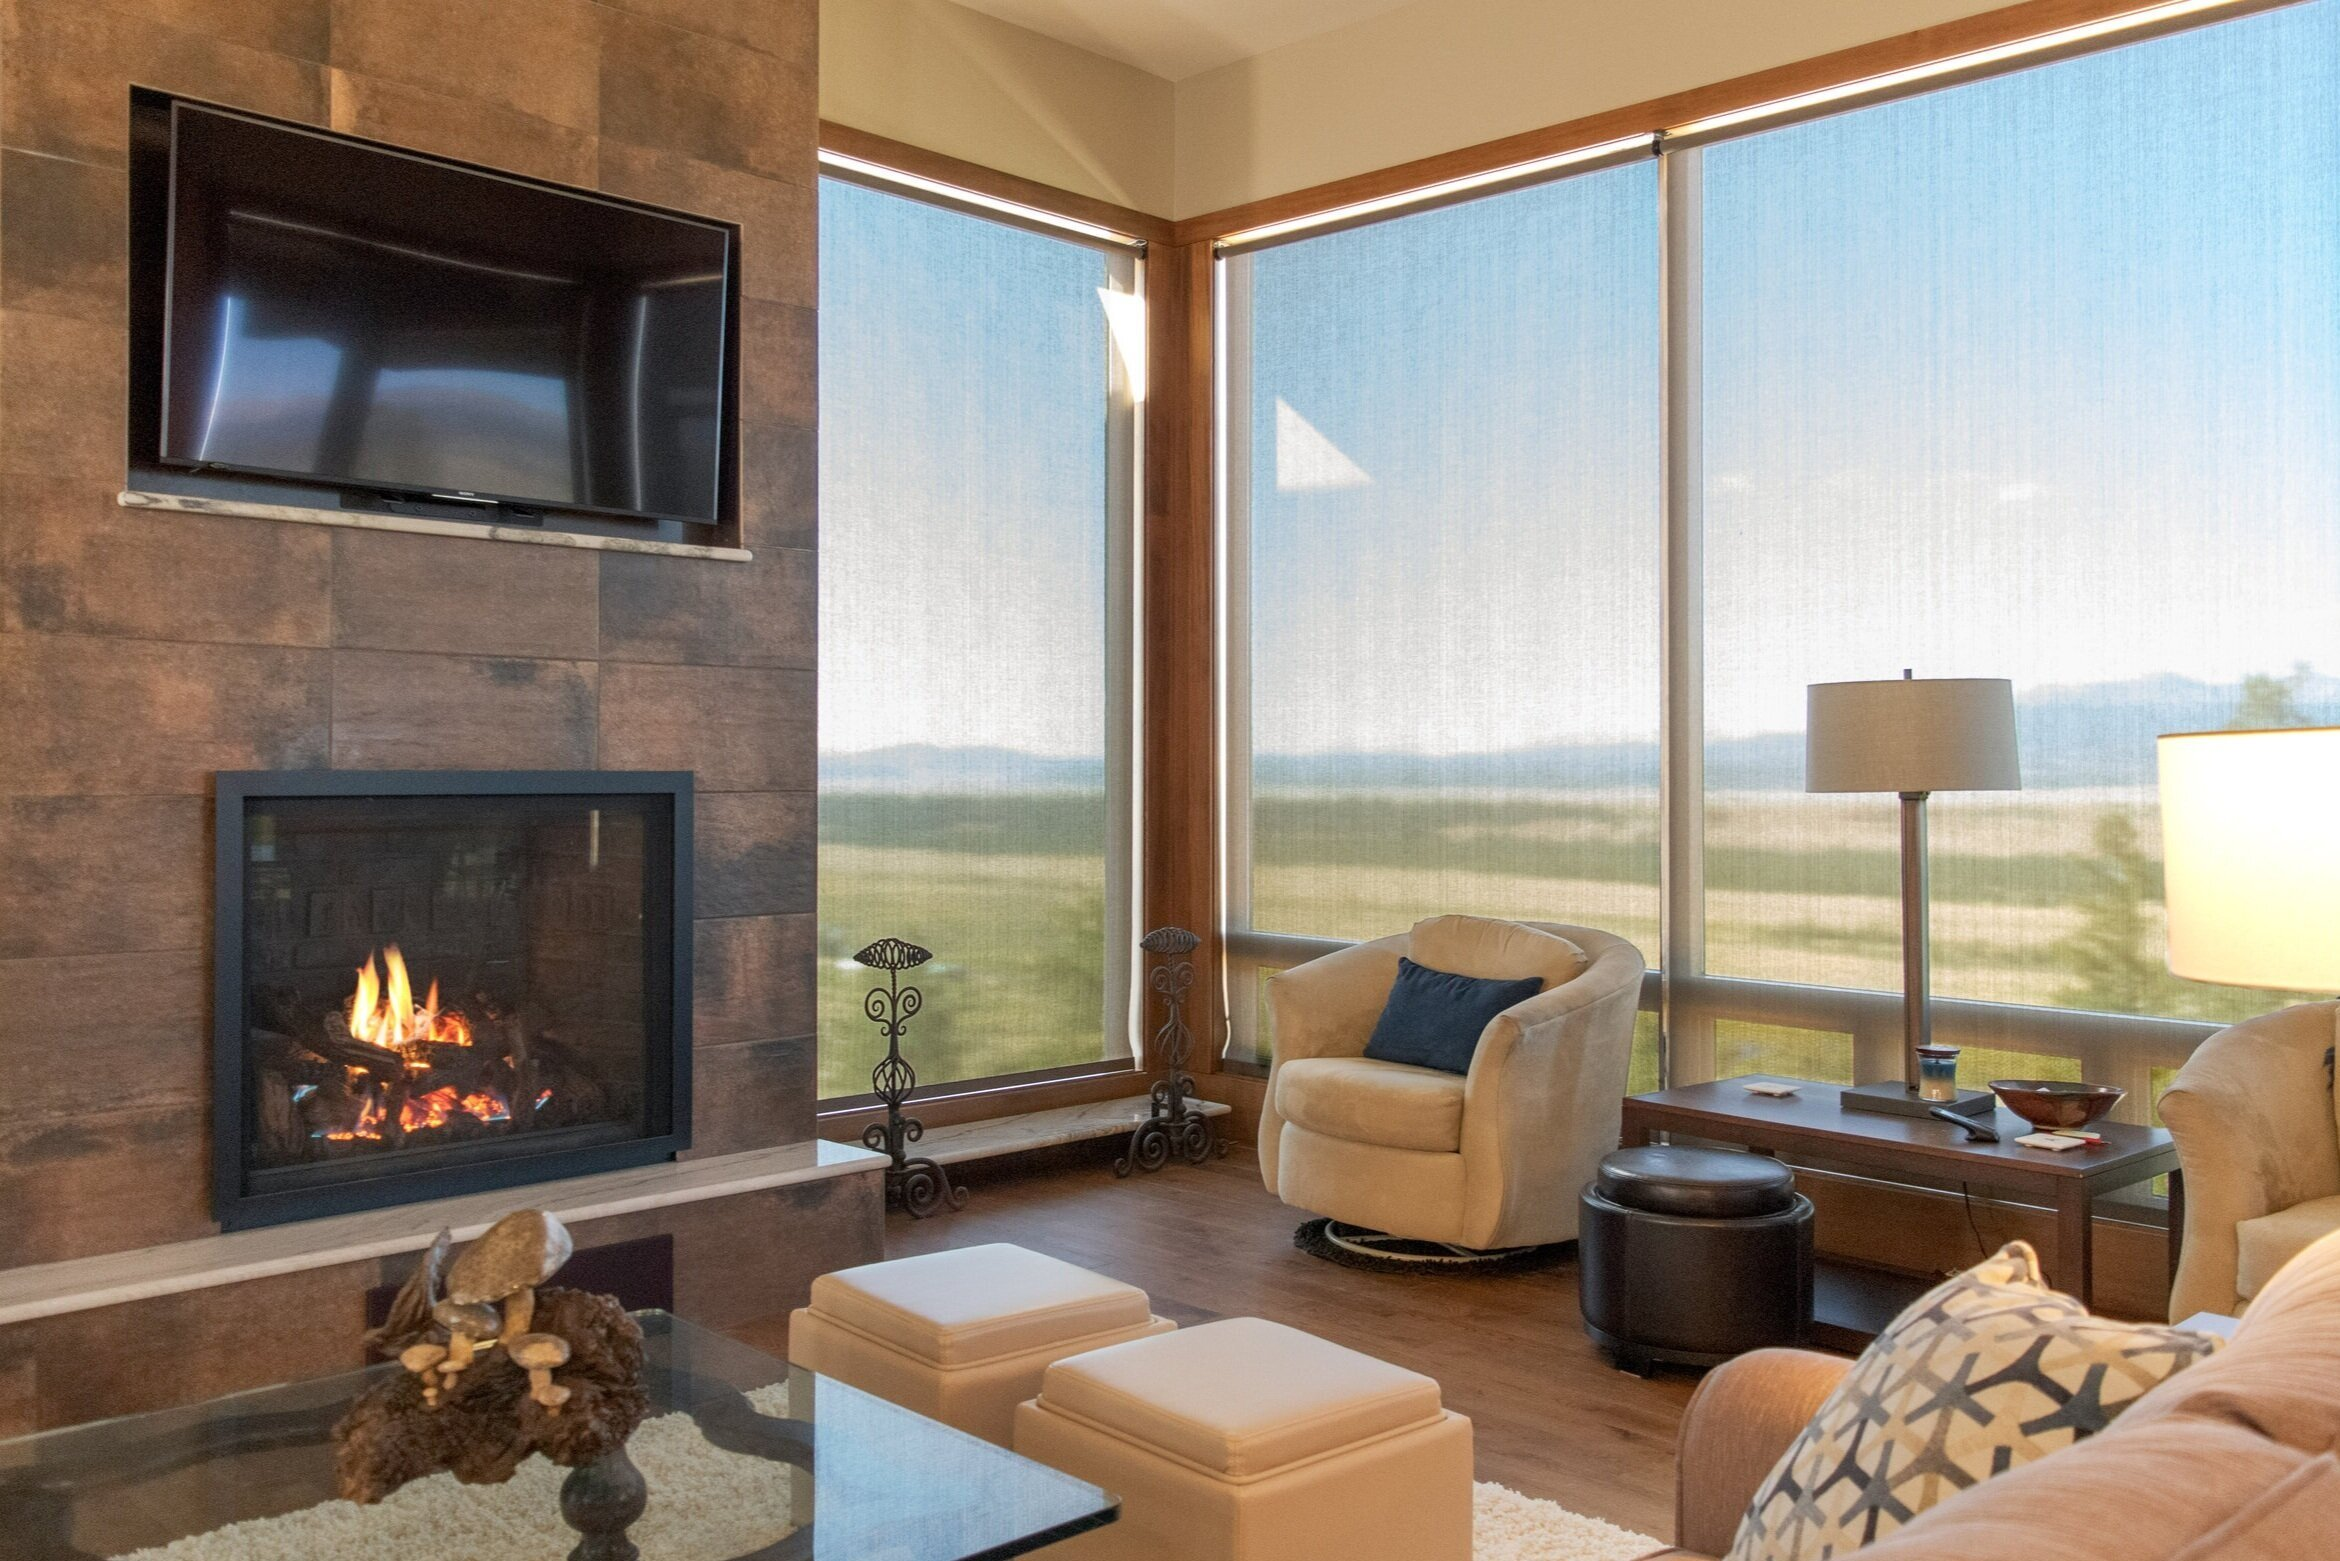 Mendota FV46 gas fireplace in a stylish modern room in Fairplay with a view of the mountains across South Park.